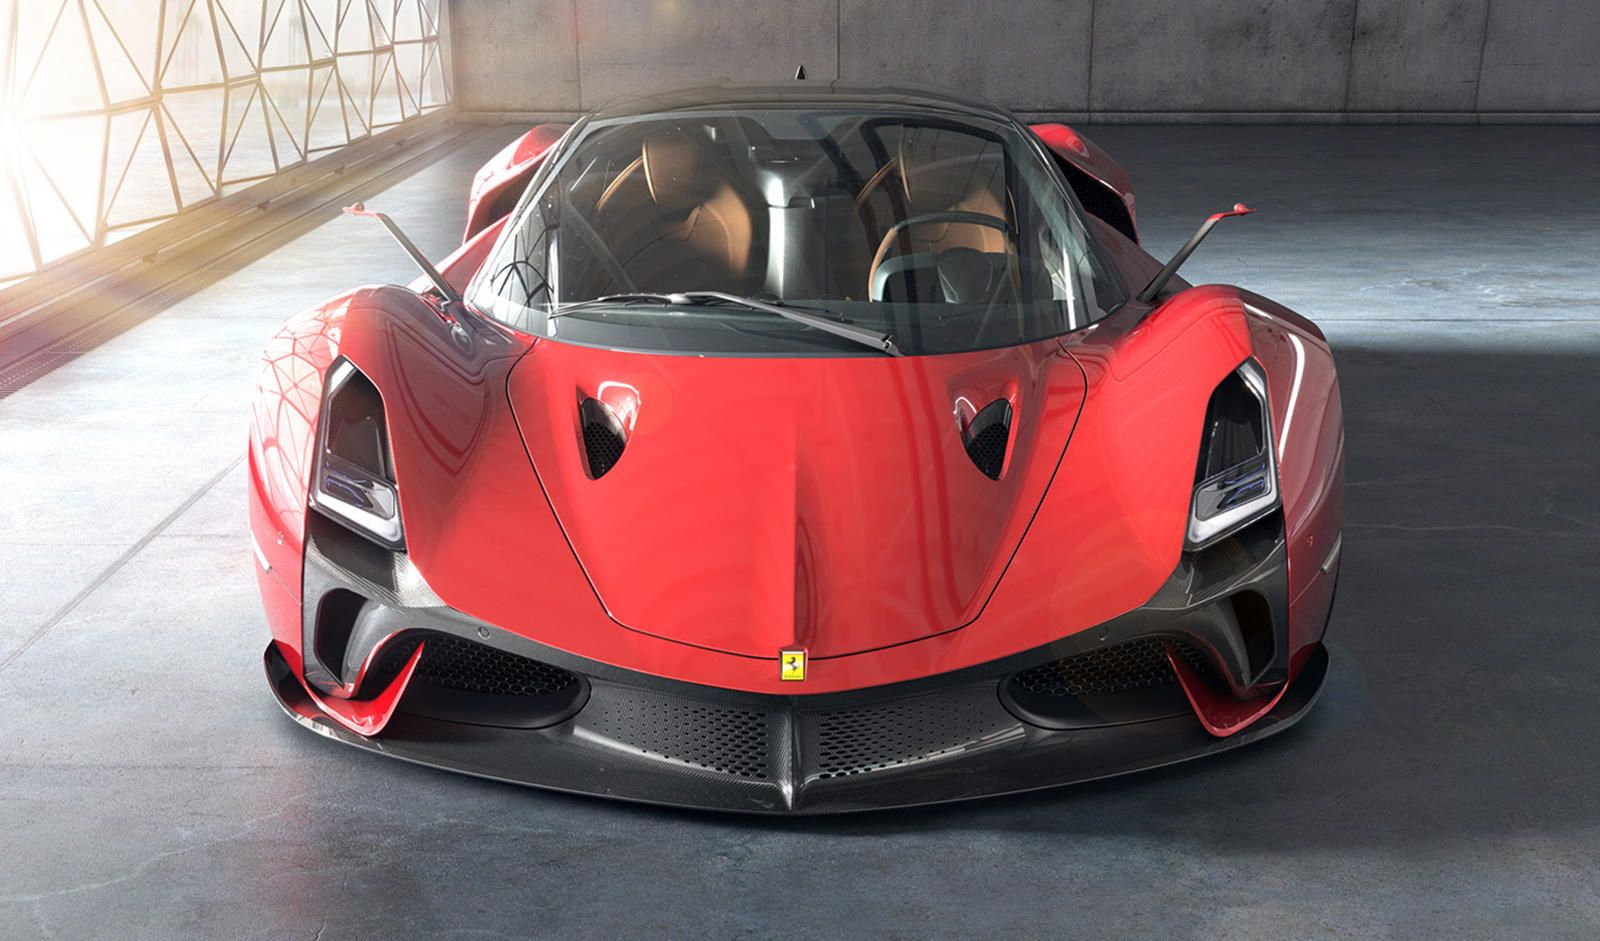 This Is What Ferrari S Next Flagship Hypercar Should Look Like Enzo Ferrari Would Doubtless Approve Of The Stallone In 2020 Concept Cars Ferrari Ferrari 612